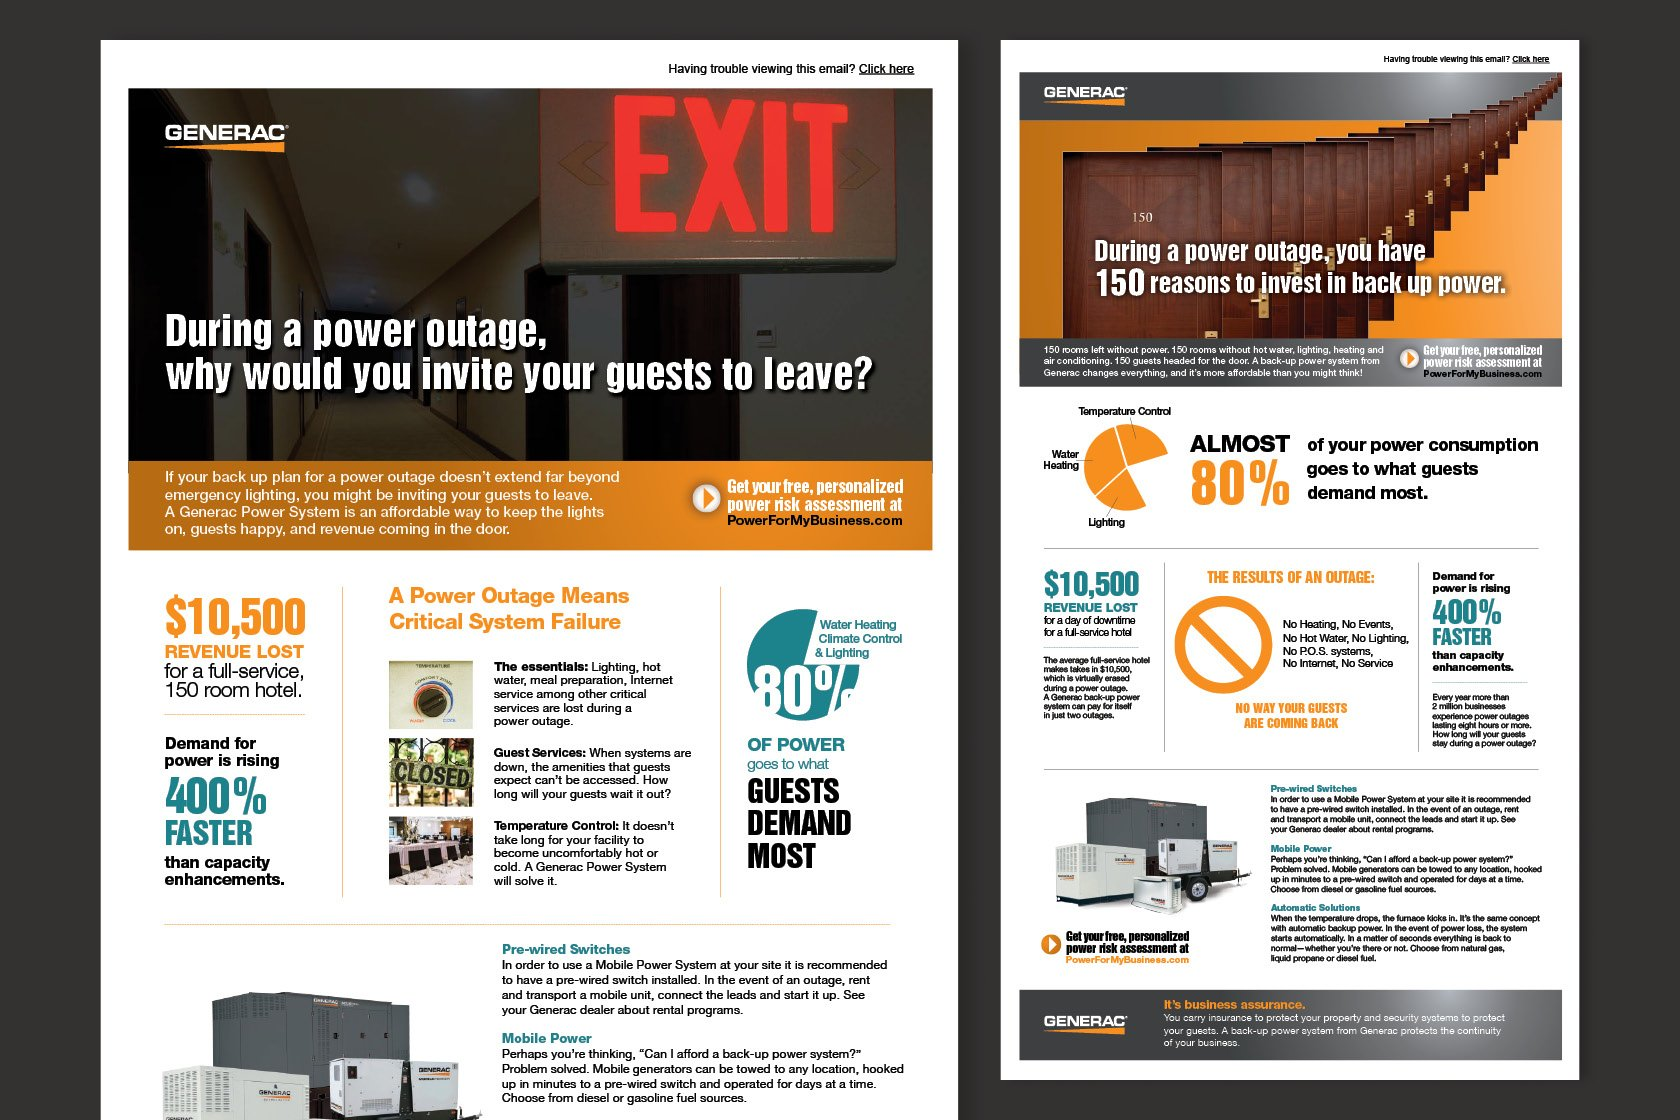 generac html email designs